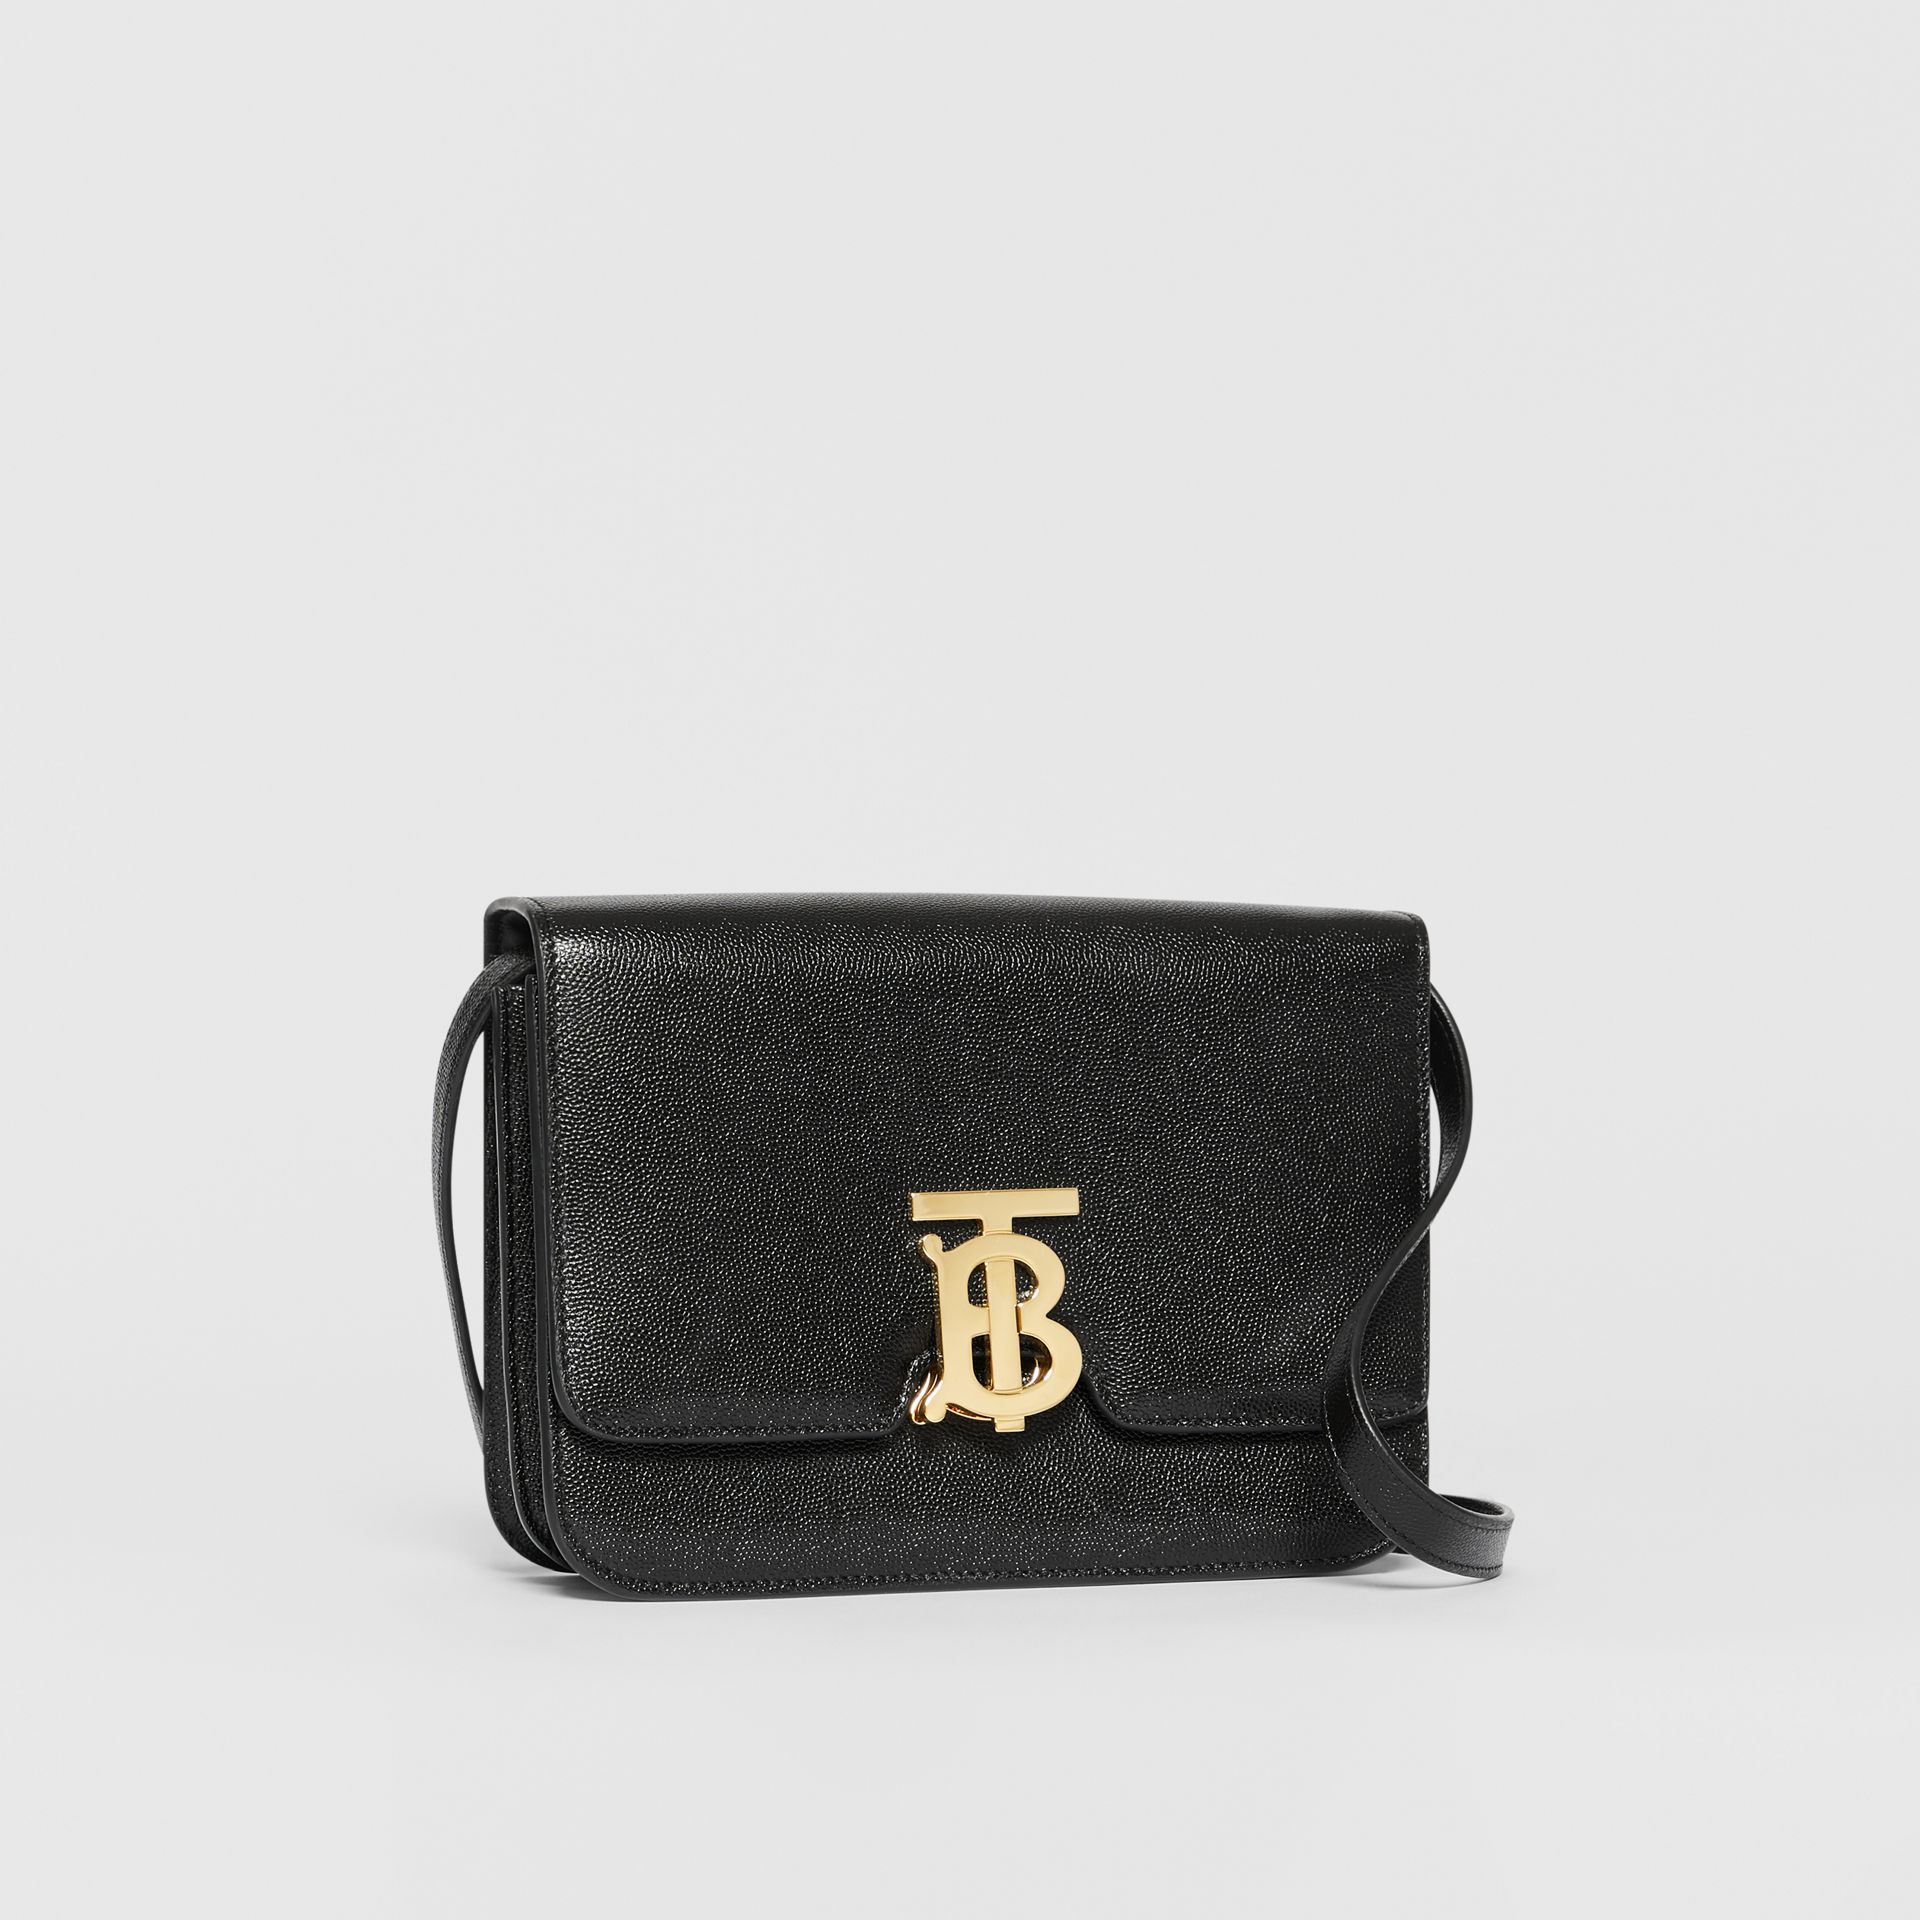 Small Grainy Leather TB Bag in Black - Women | Burberry - gallery image 6